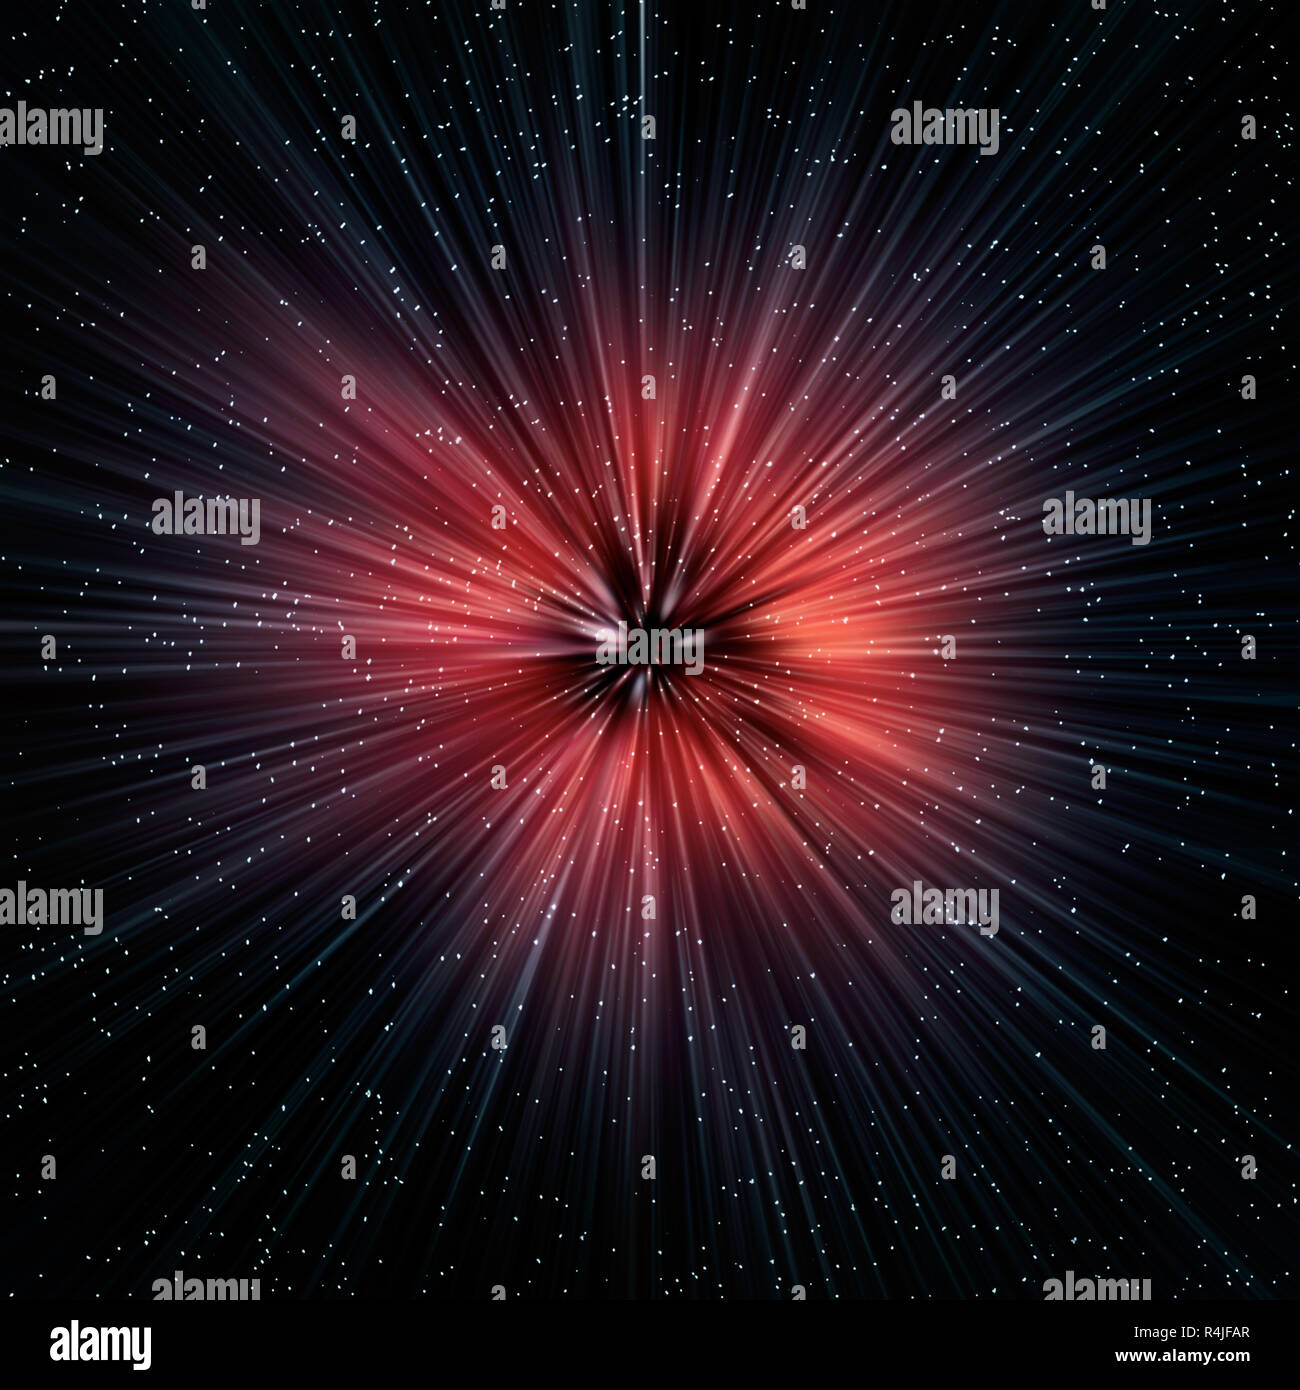 Supernova explosion in Space - Stock Image